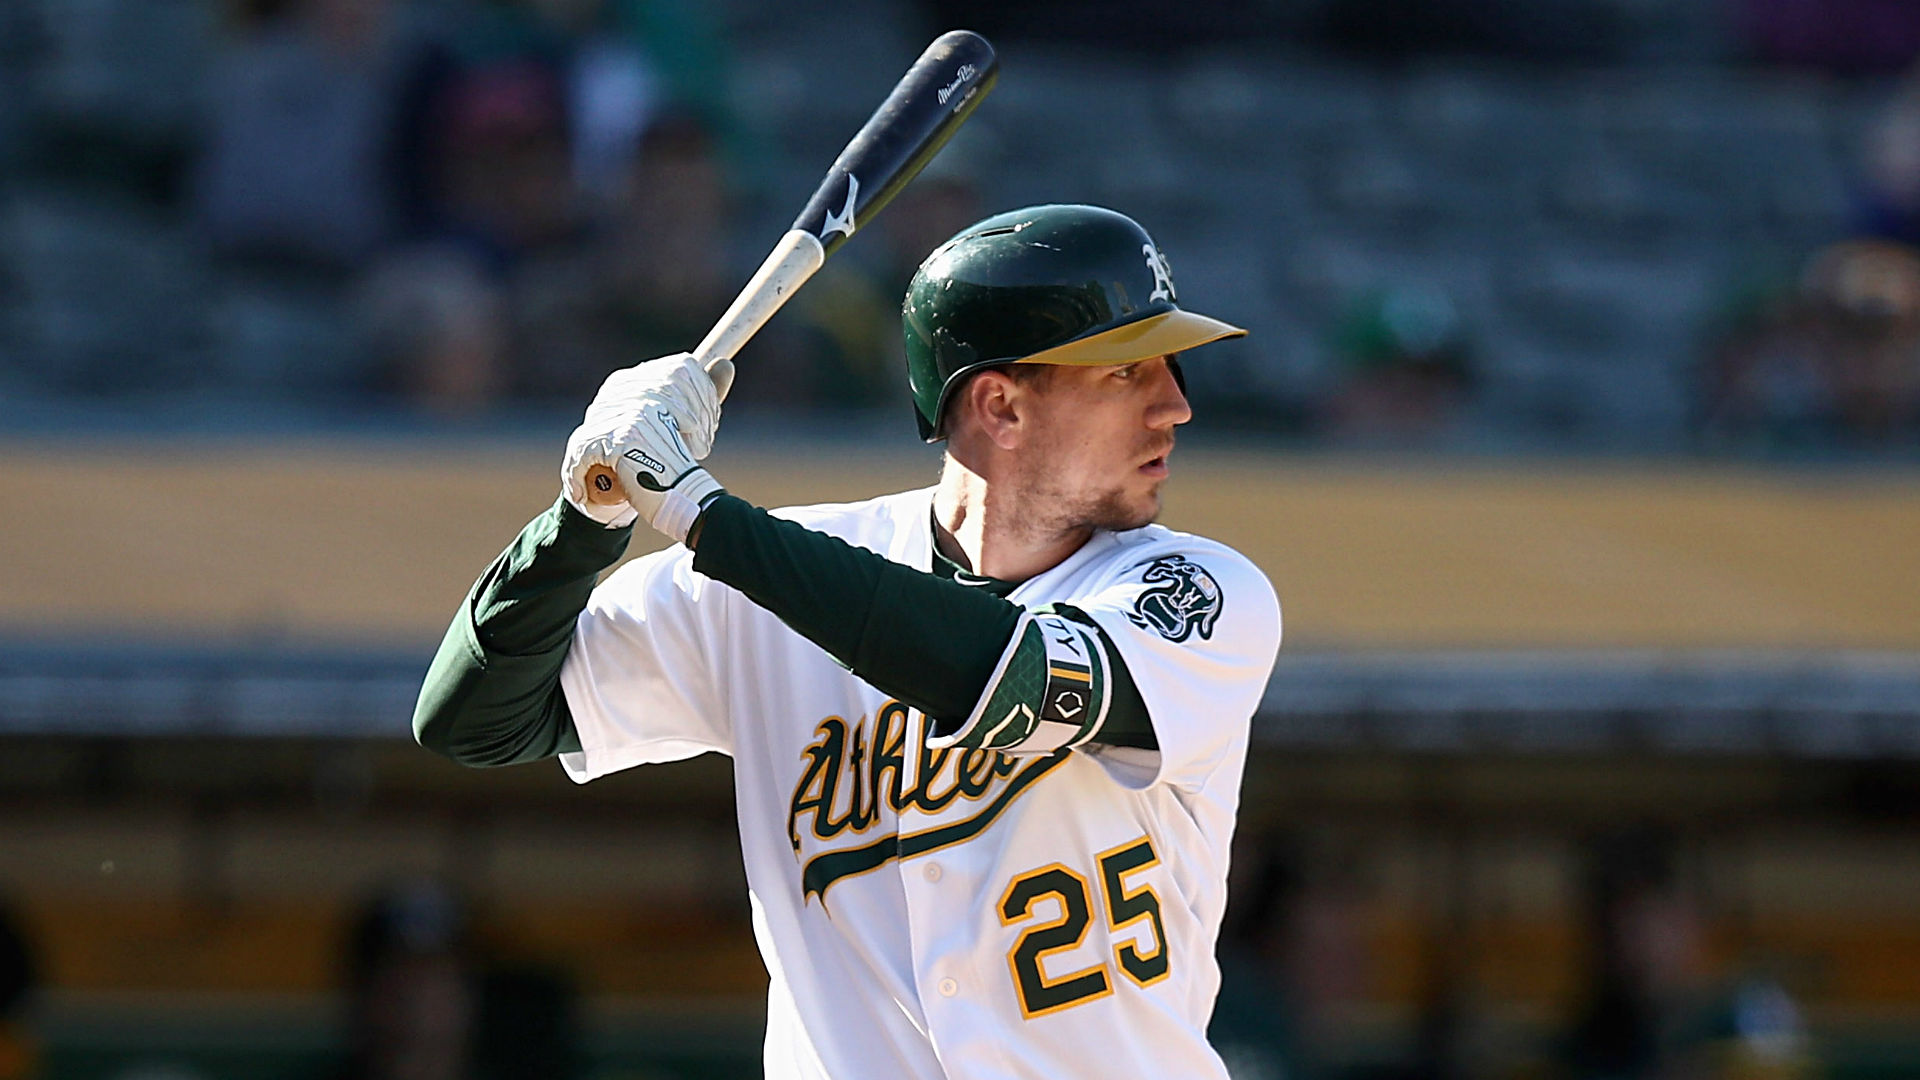 Mother of A's Stephen Piscotty dies at 55 of Lou Gehrig's disease